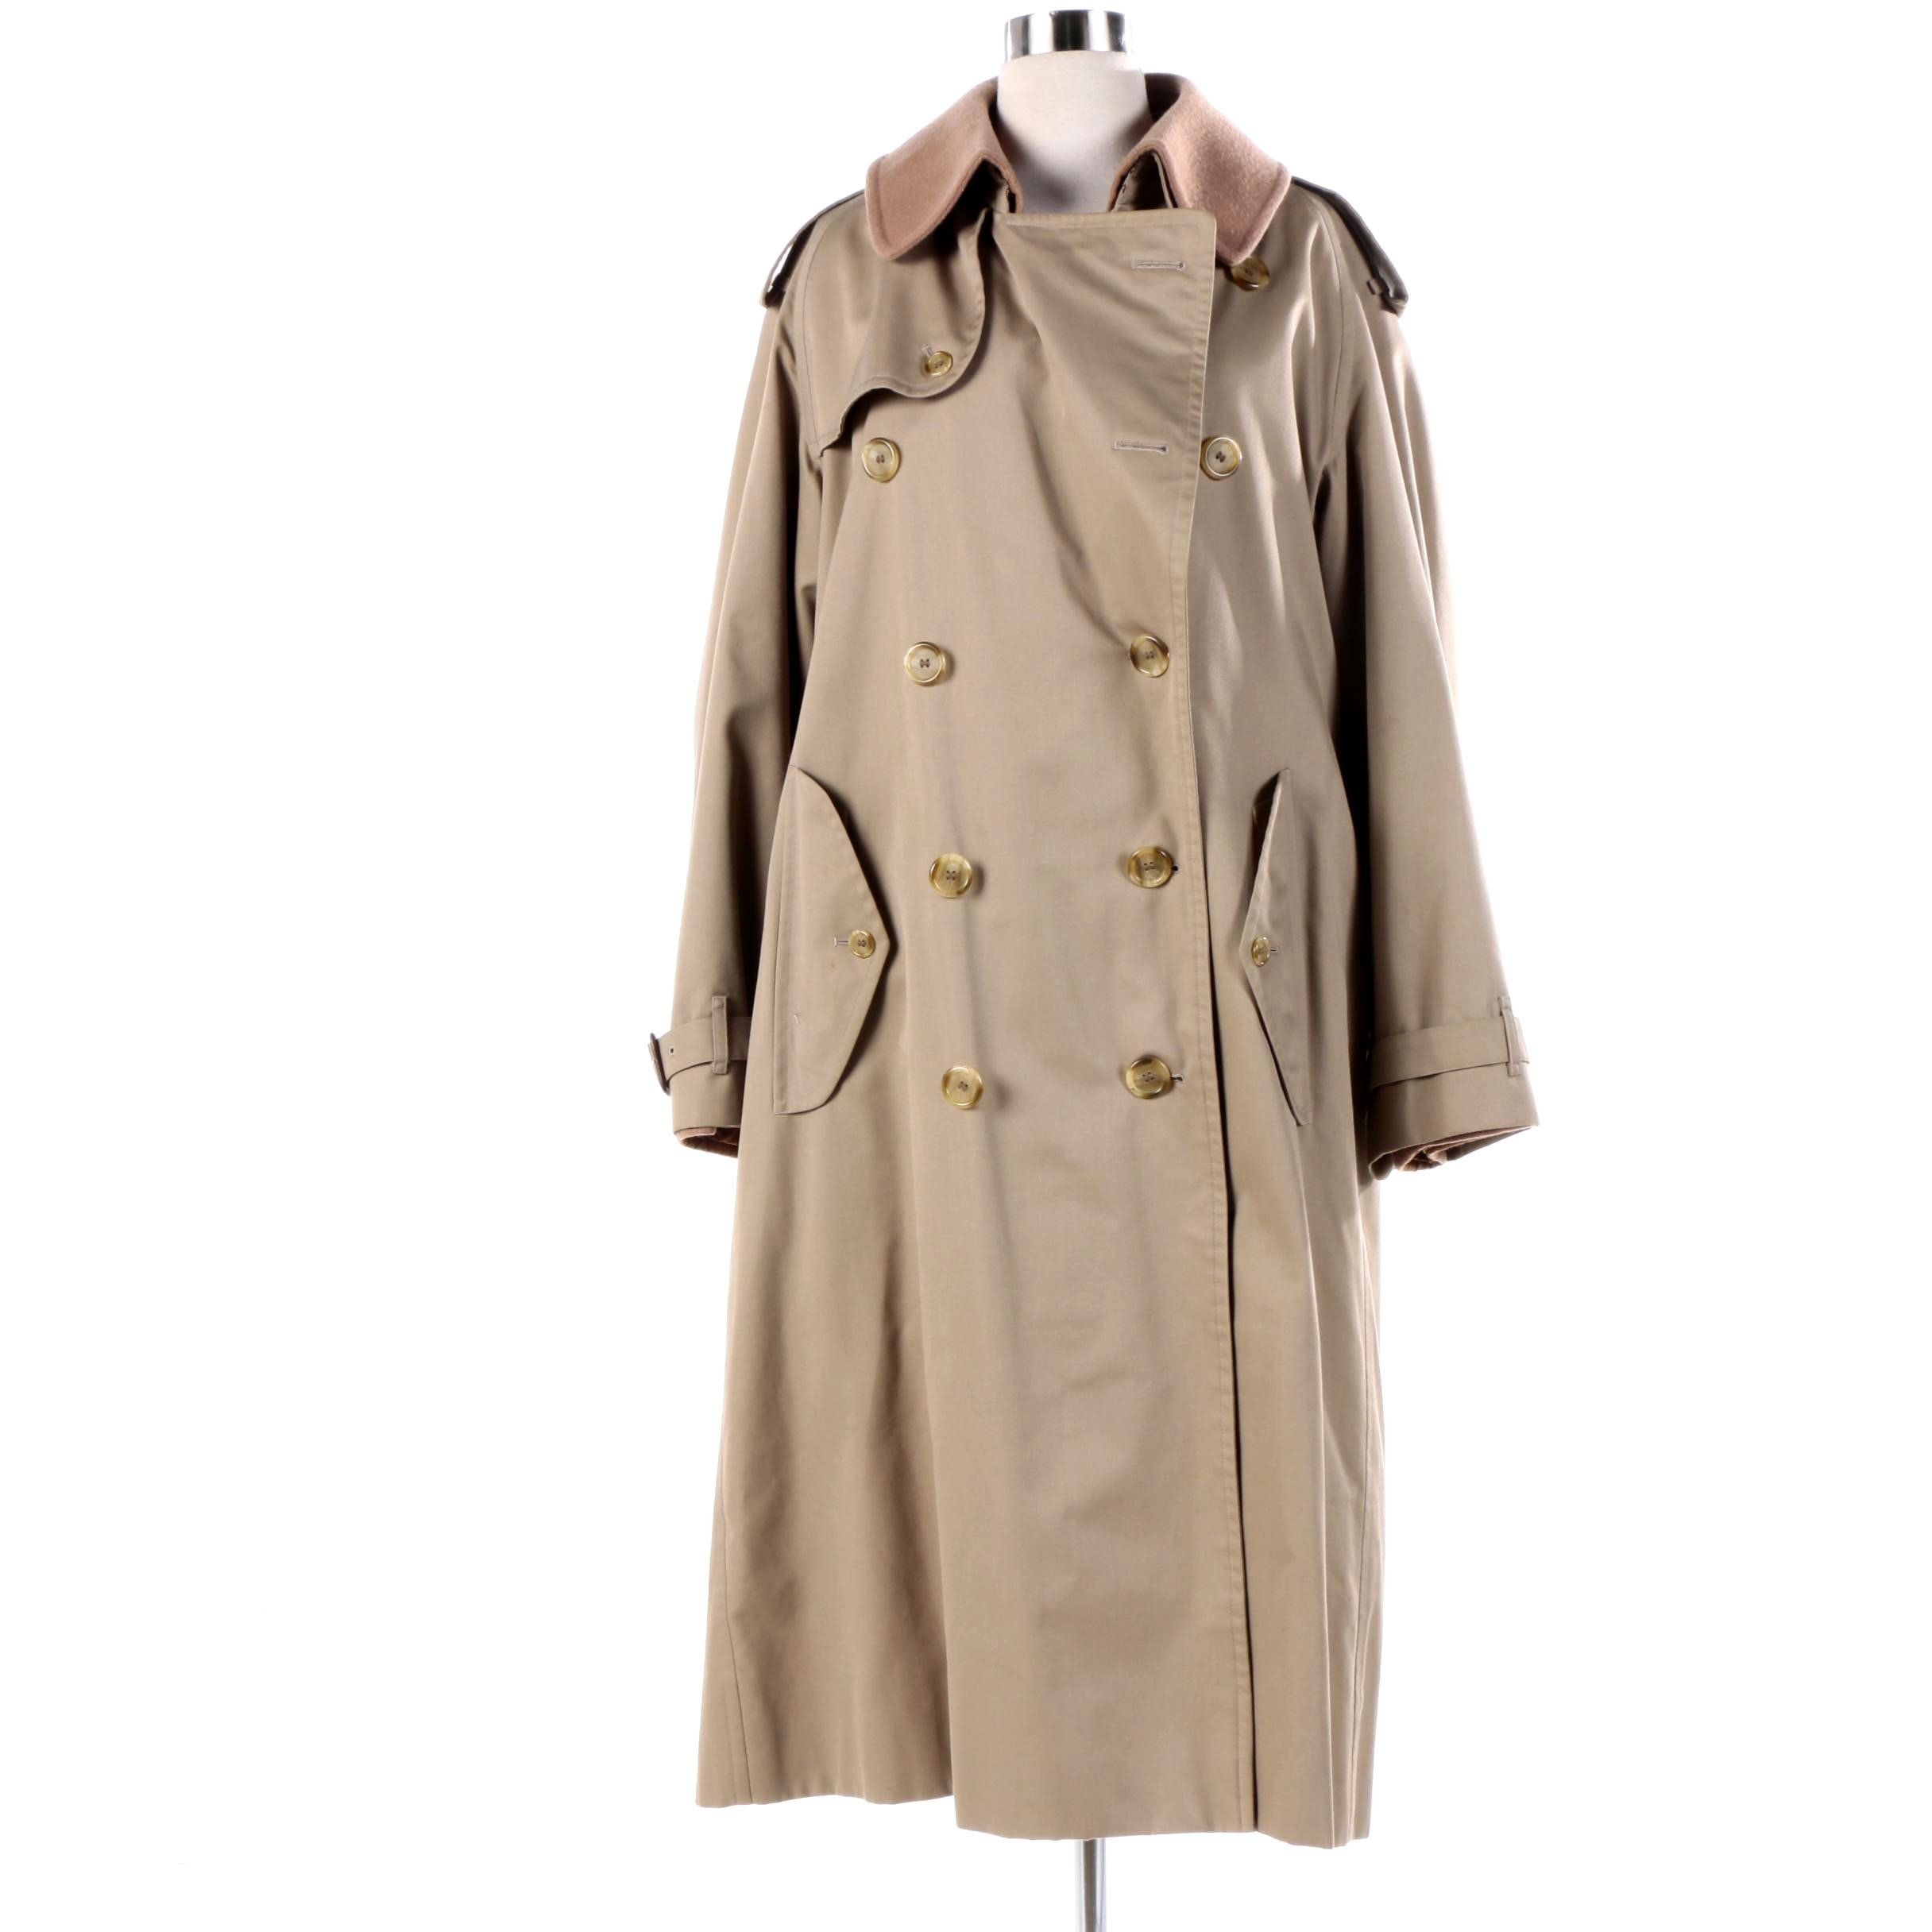 Men's Vintage Burberry Double-Breasted Trench Coat with Removable Wool Liner